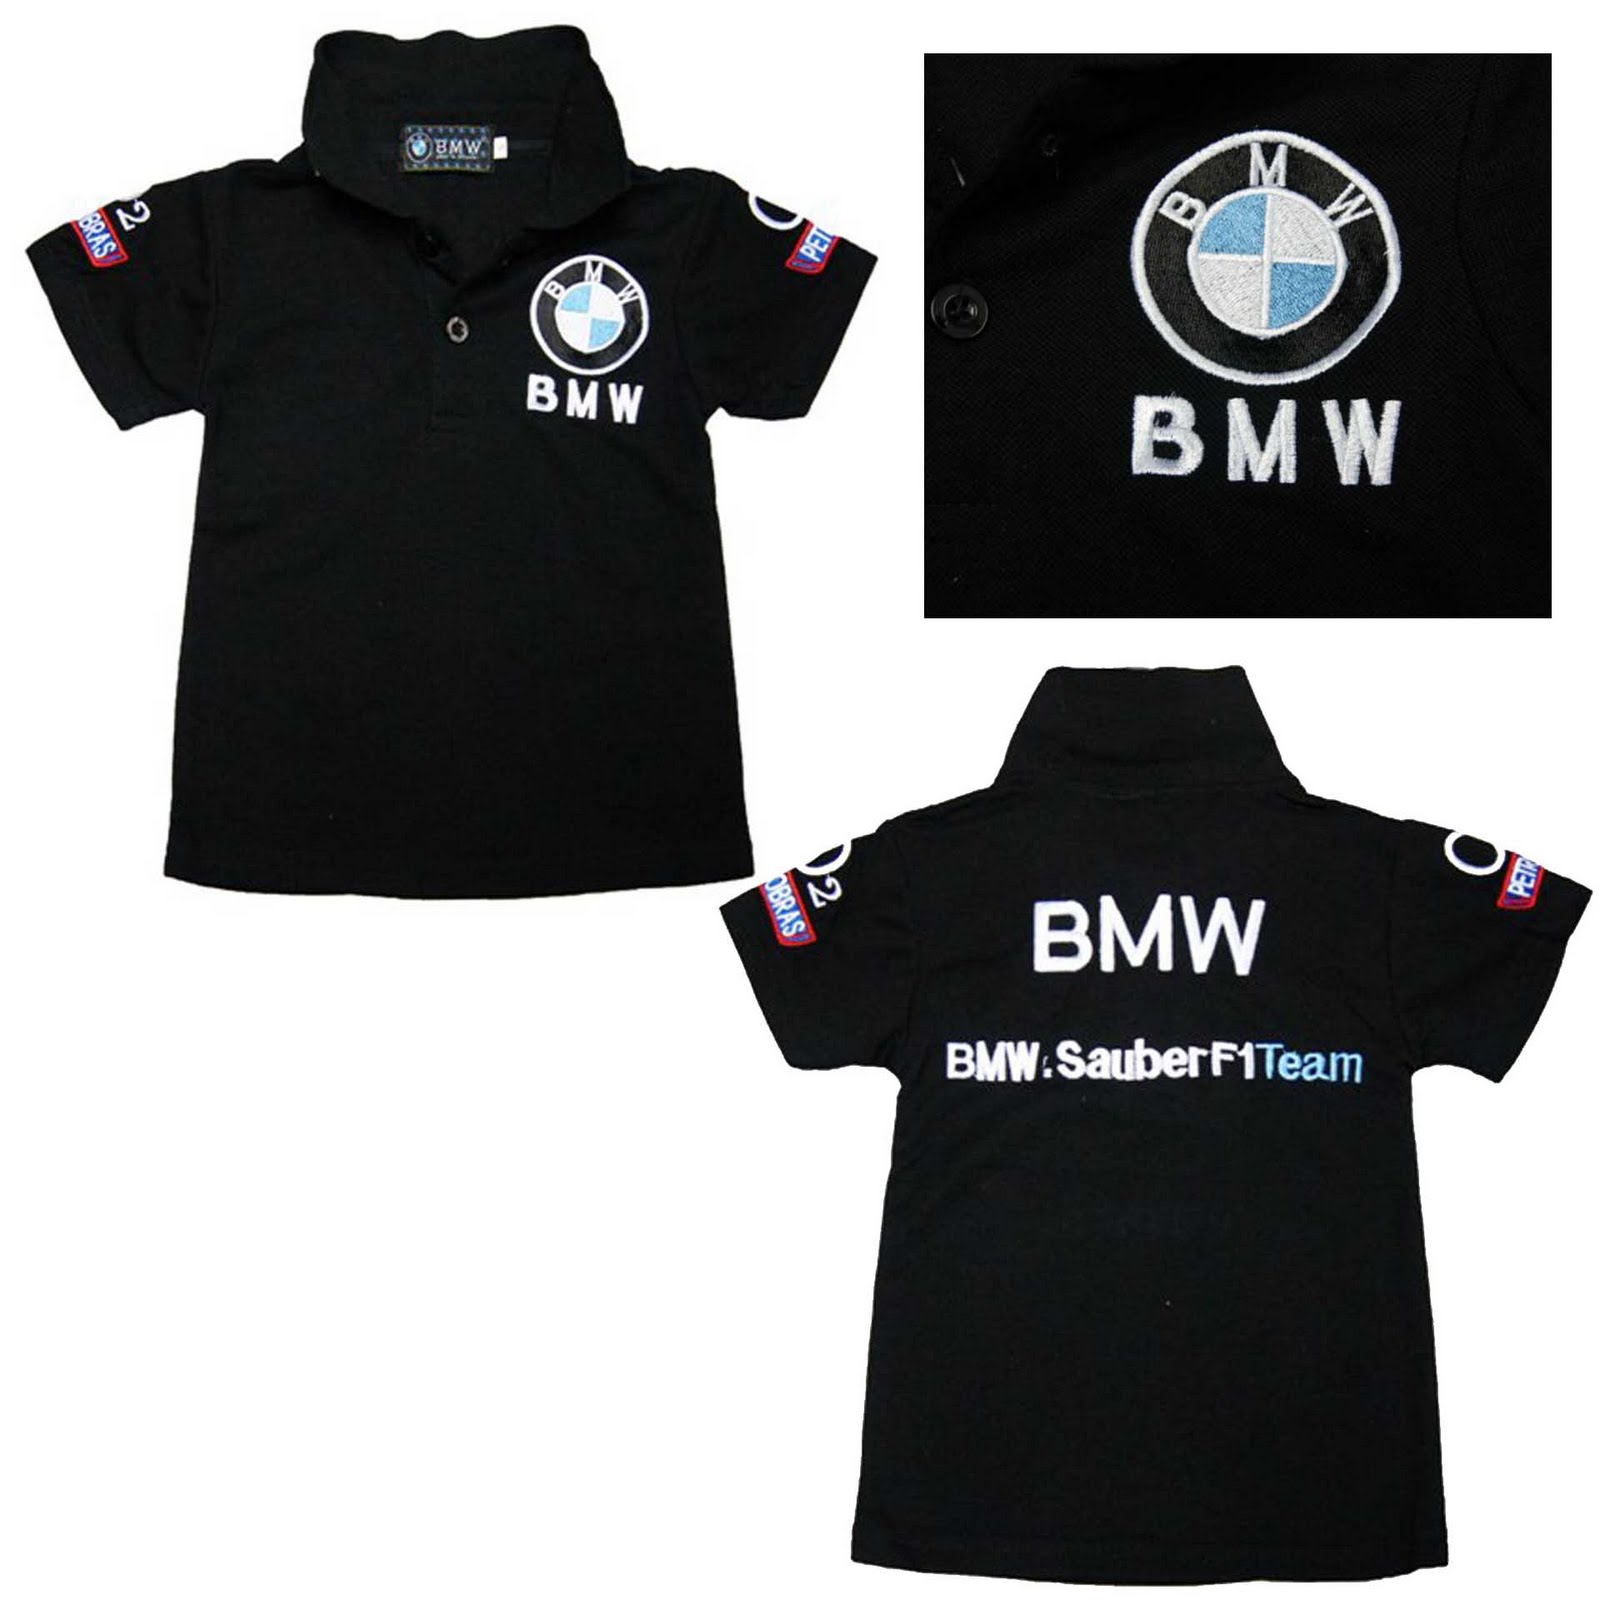 Baby ku cute collections ready stock bmw shirt for Bmw t shirt online